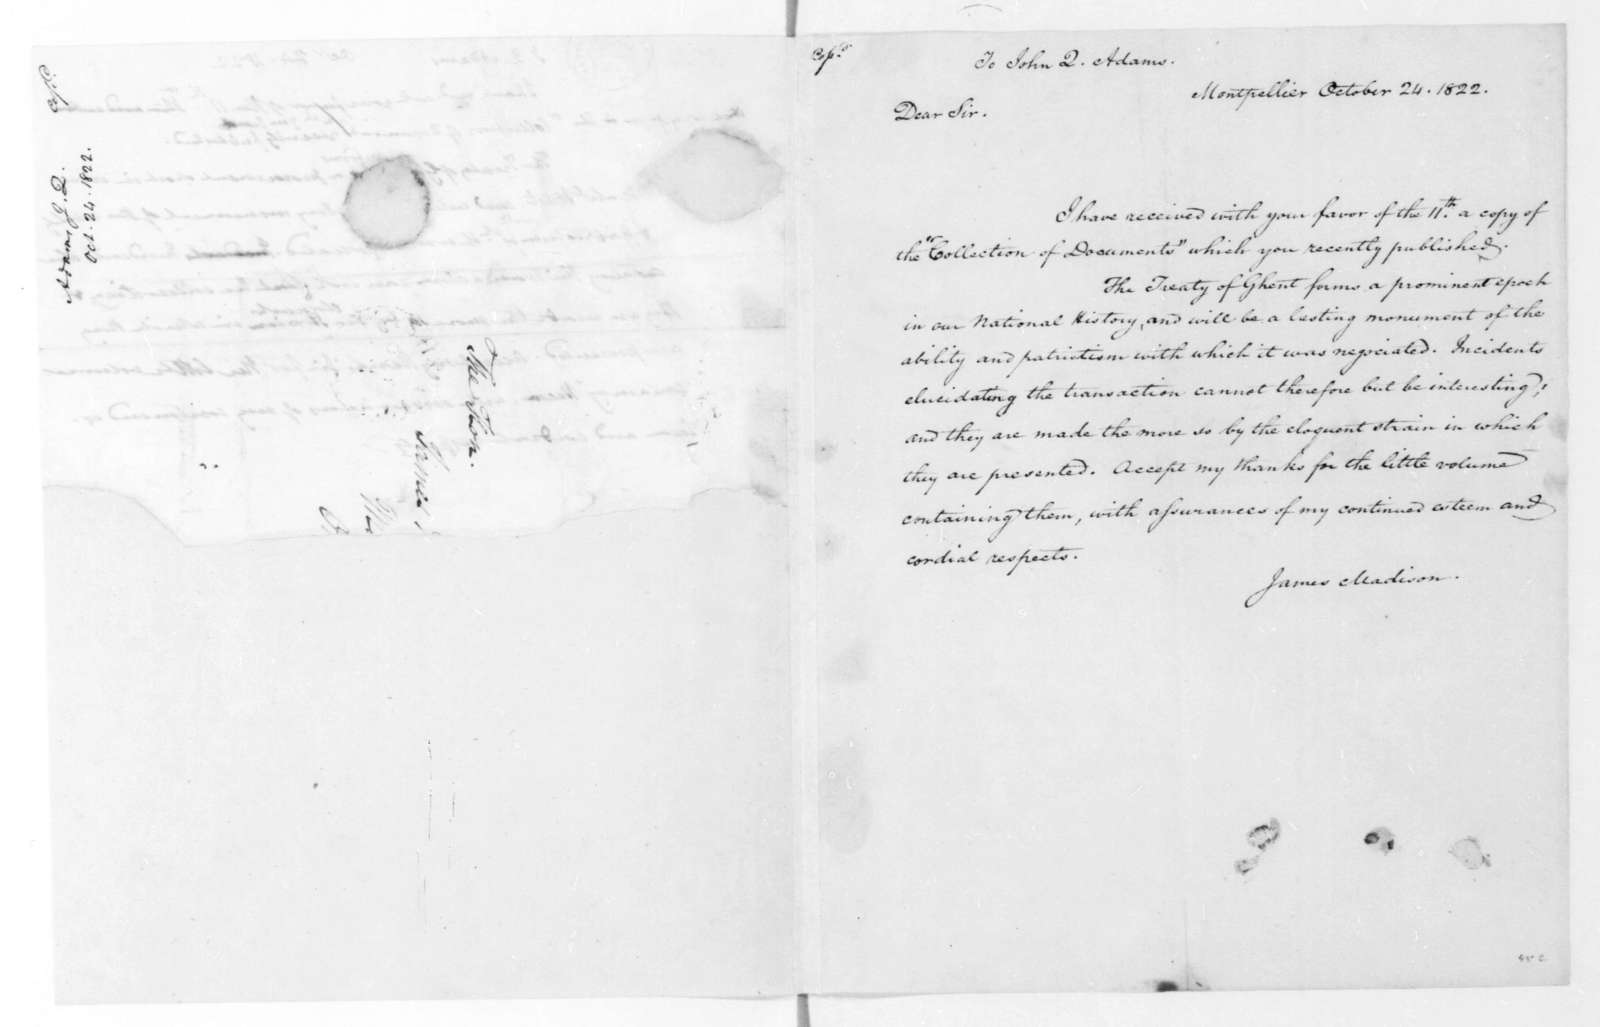 James Madison to John Quincy Adams, October 24, 1822. With Copy.